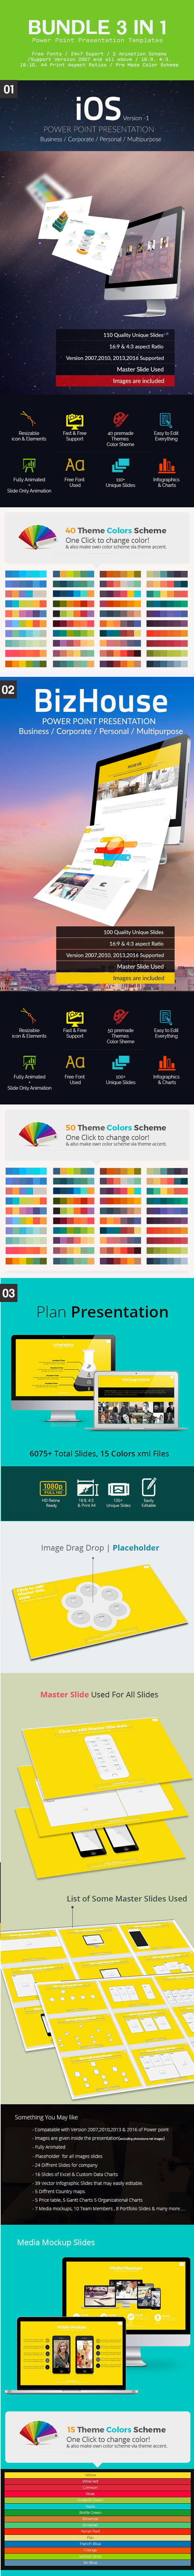 Business Bundle Multipurpose 3 in 1 Presentation - Business PowerPoint Templates